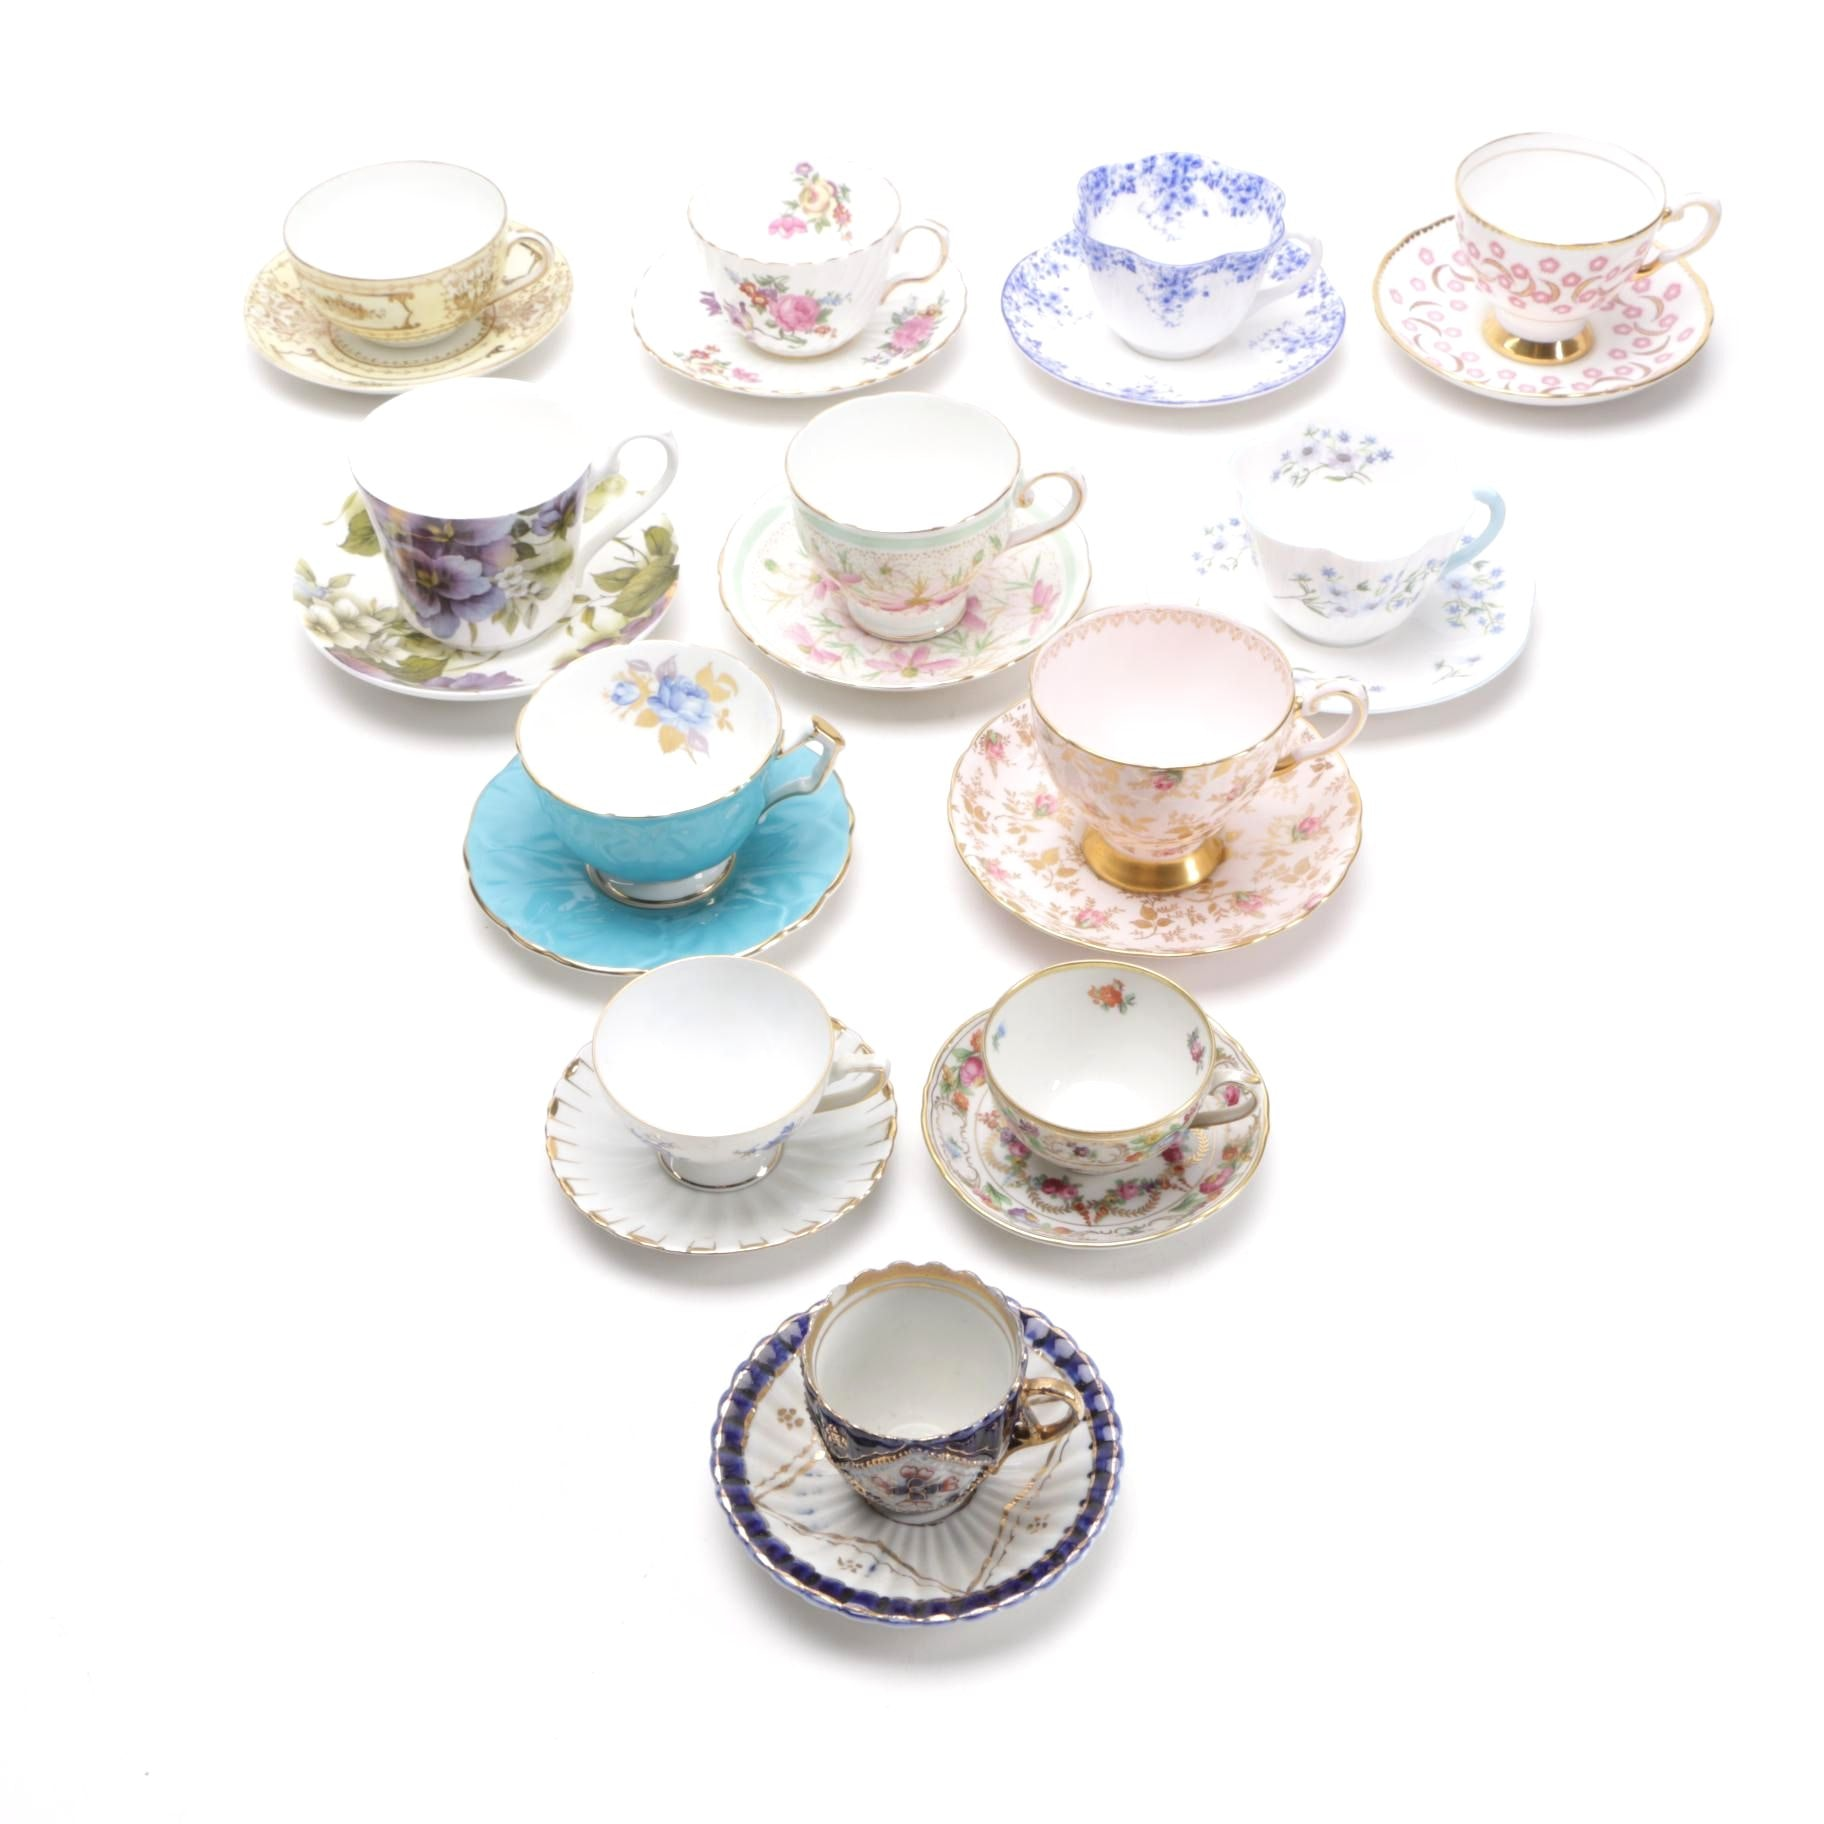 Teacups and Saucers Featuring Nippon